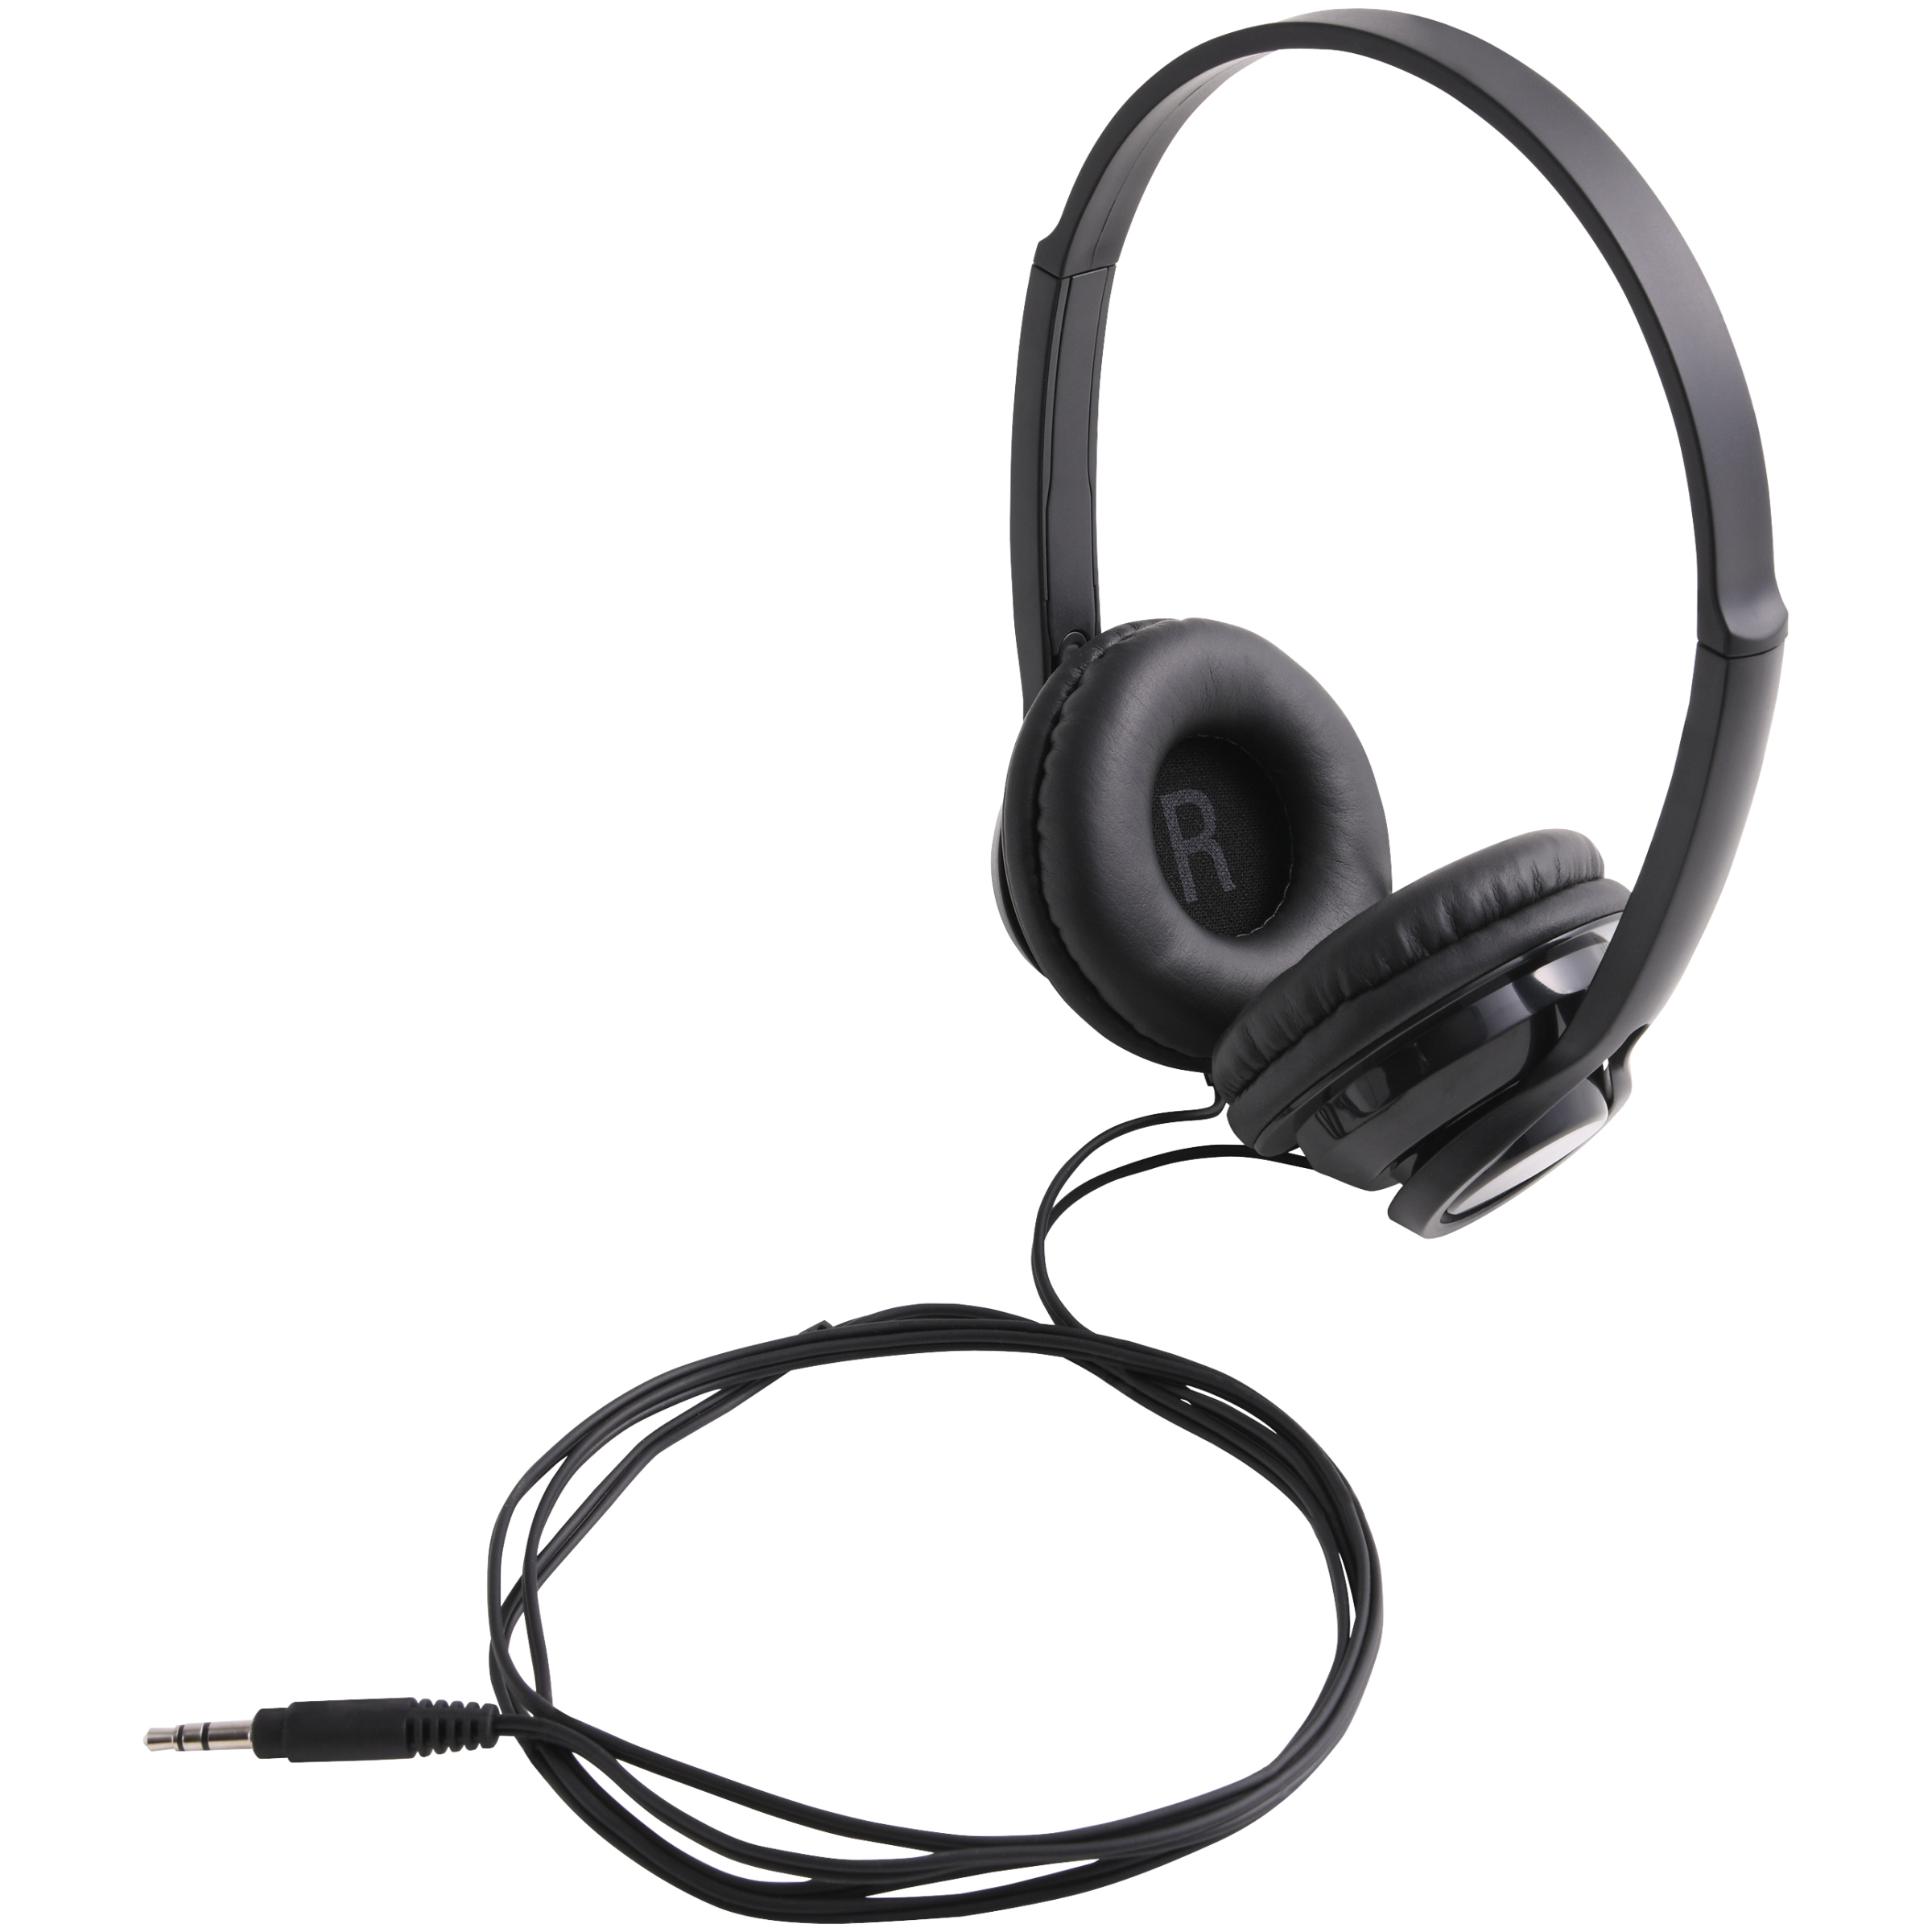 onn. On-Ear Headphones - Black